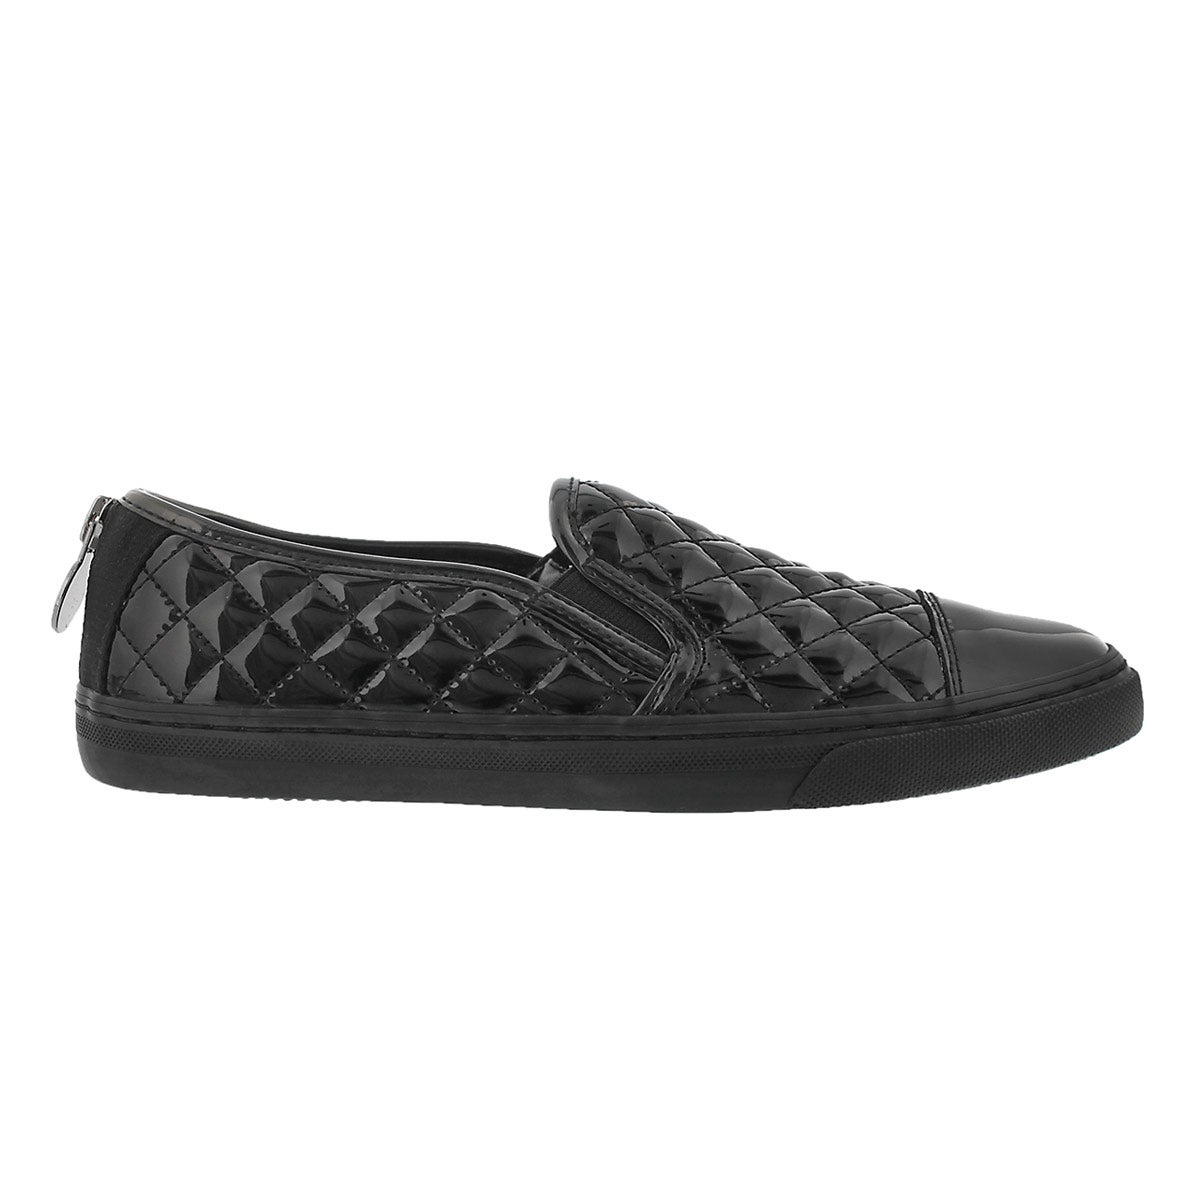 Lds New Club black patent quilted loafer